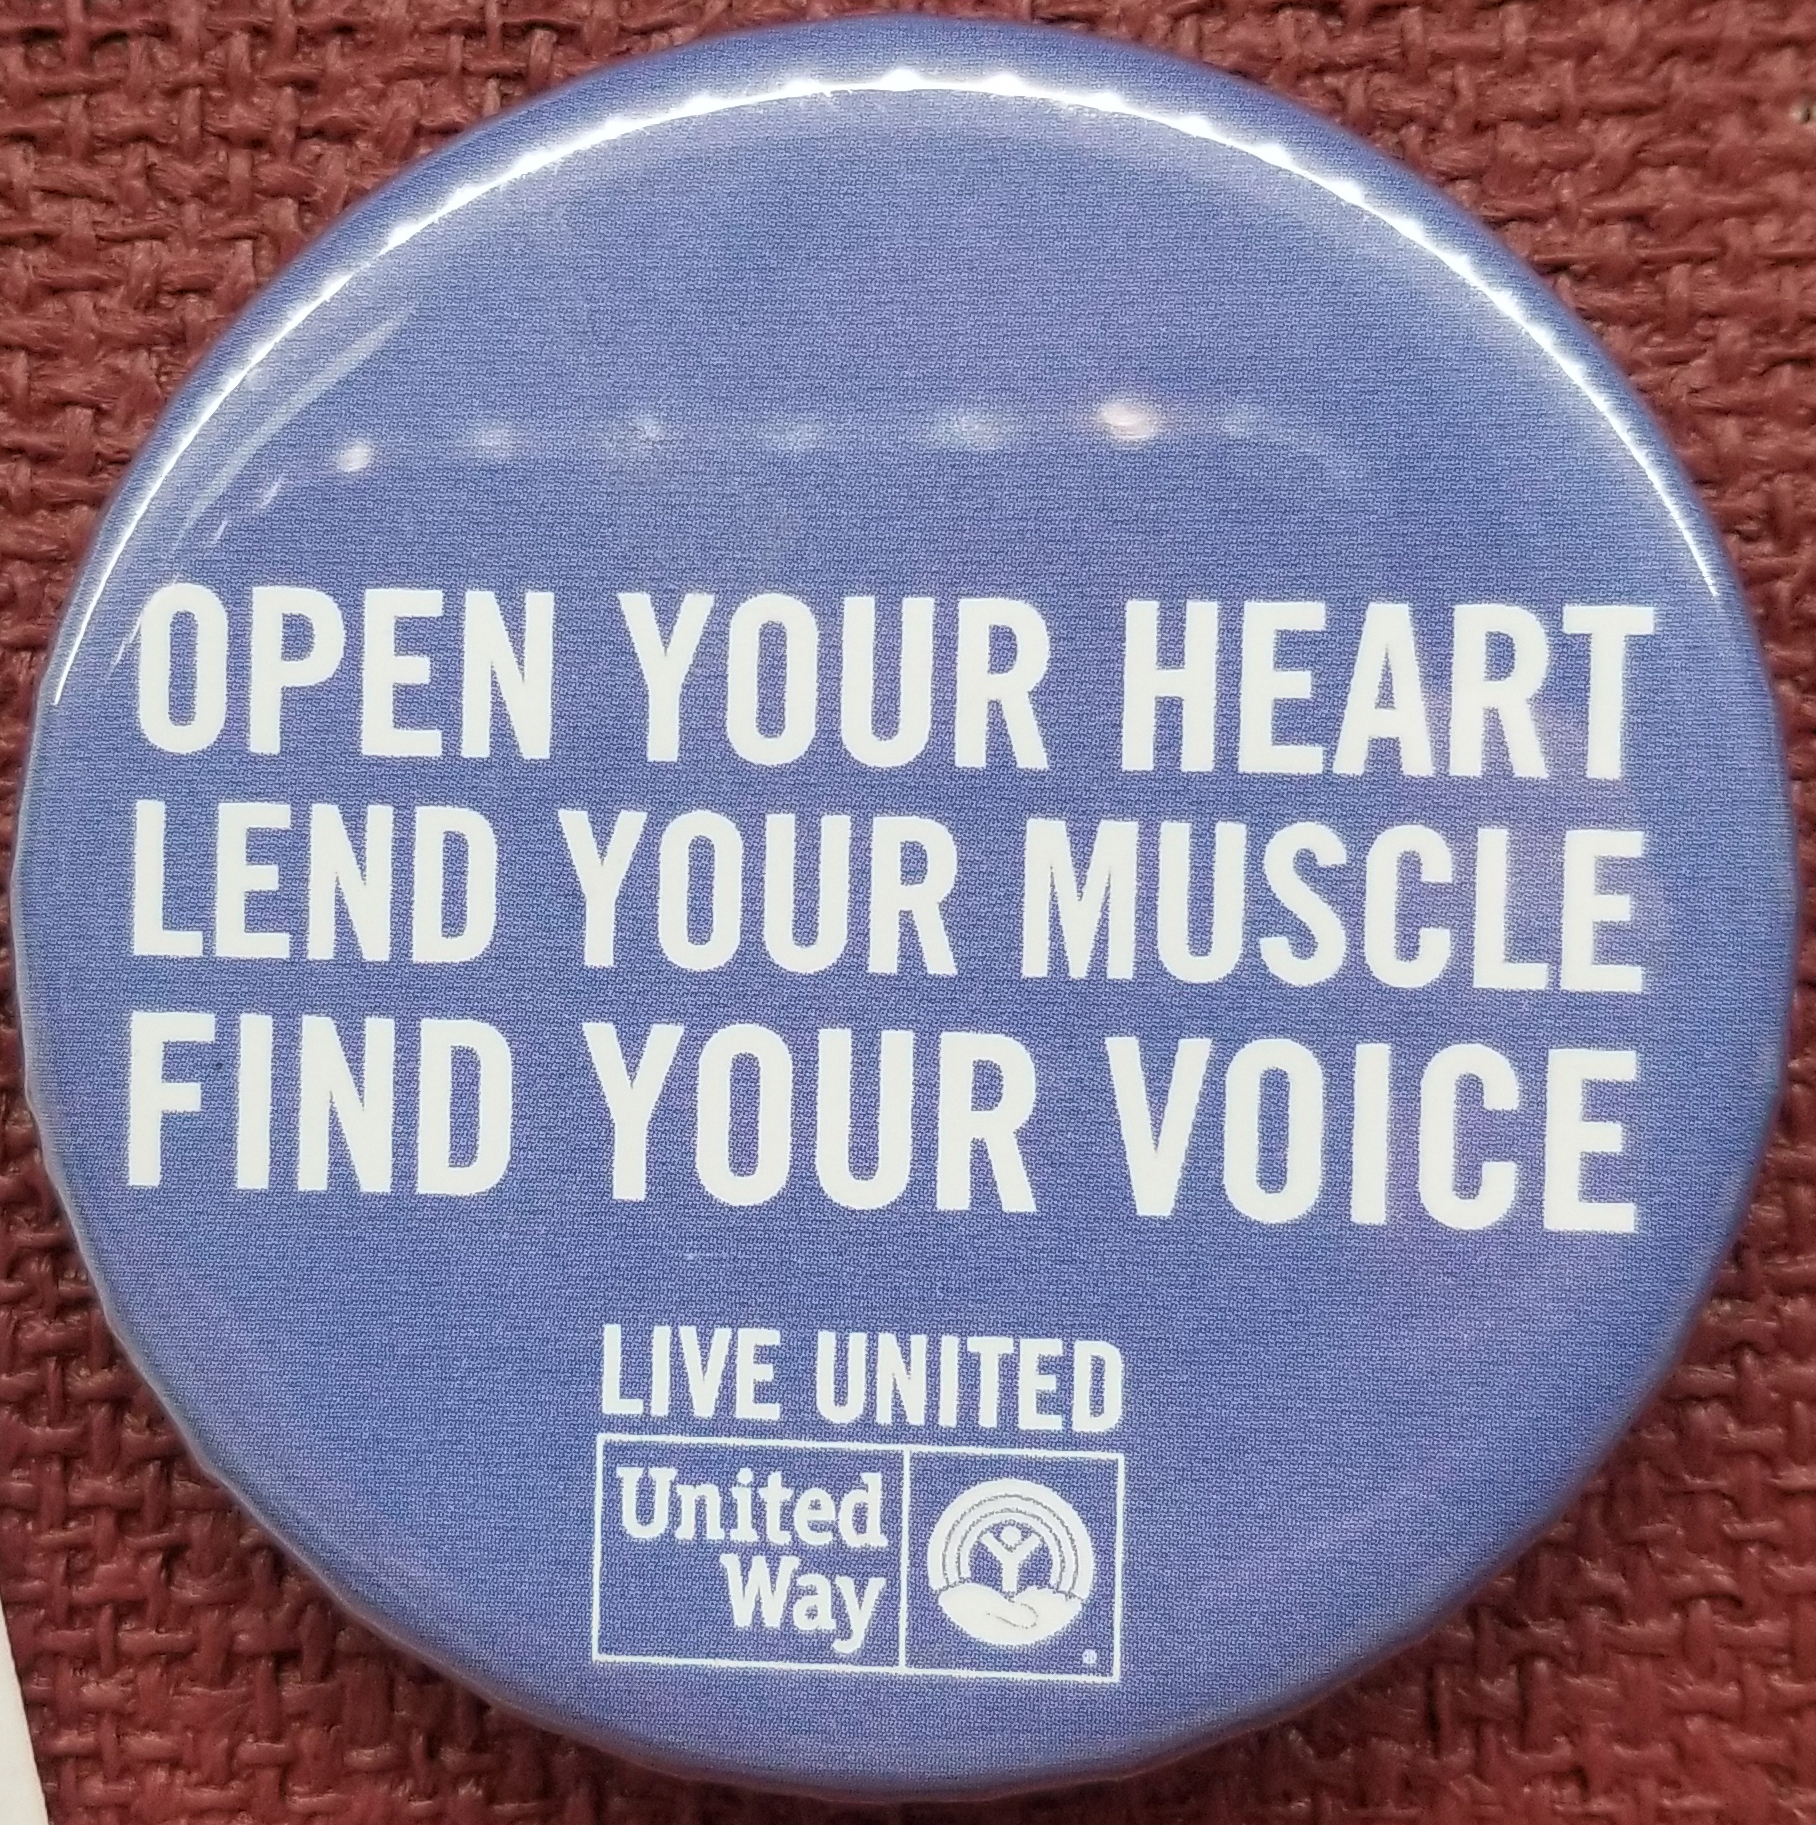 United Way is Looking for new Board Members!